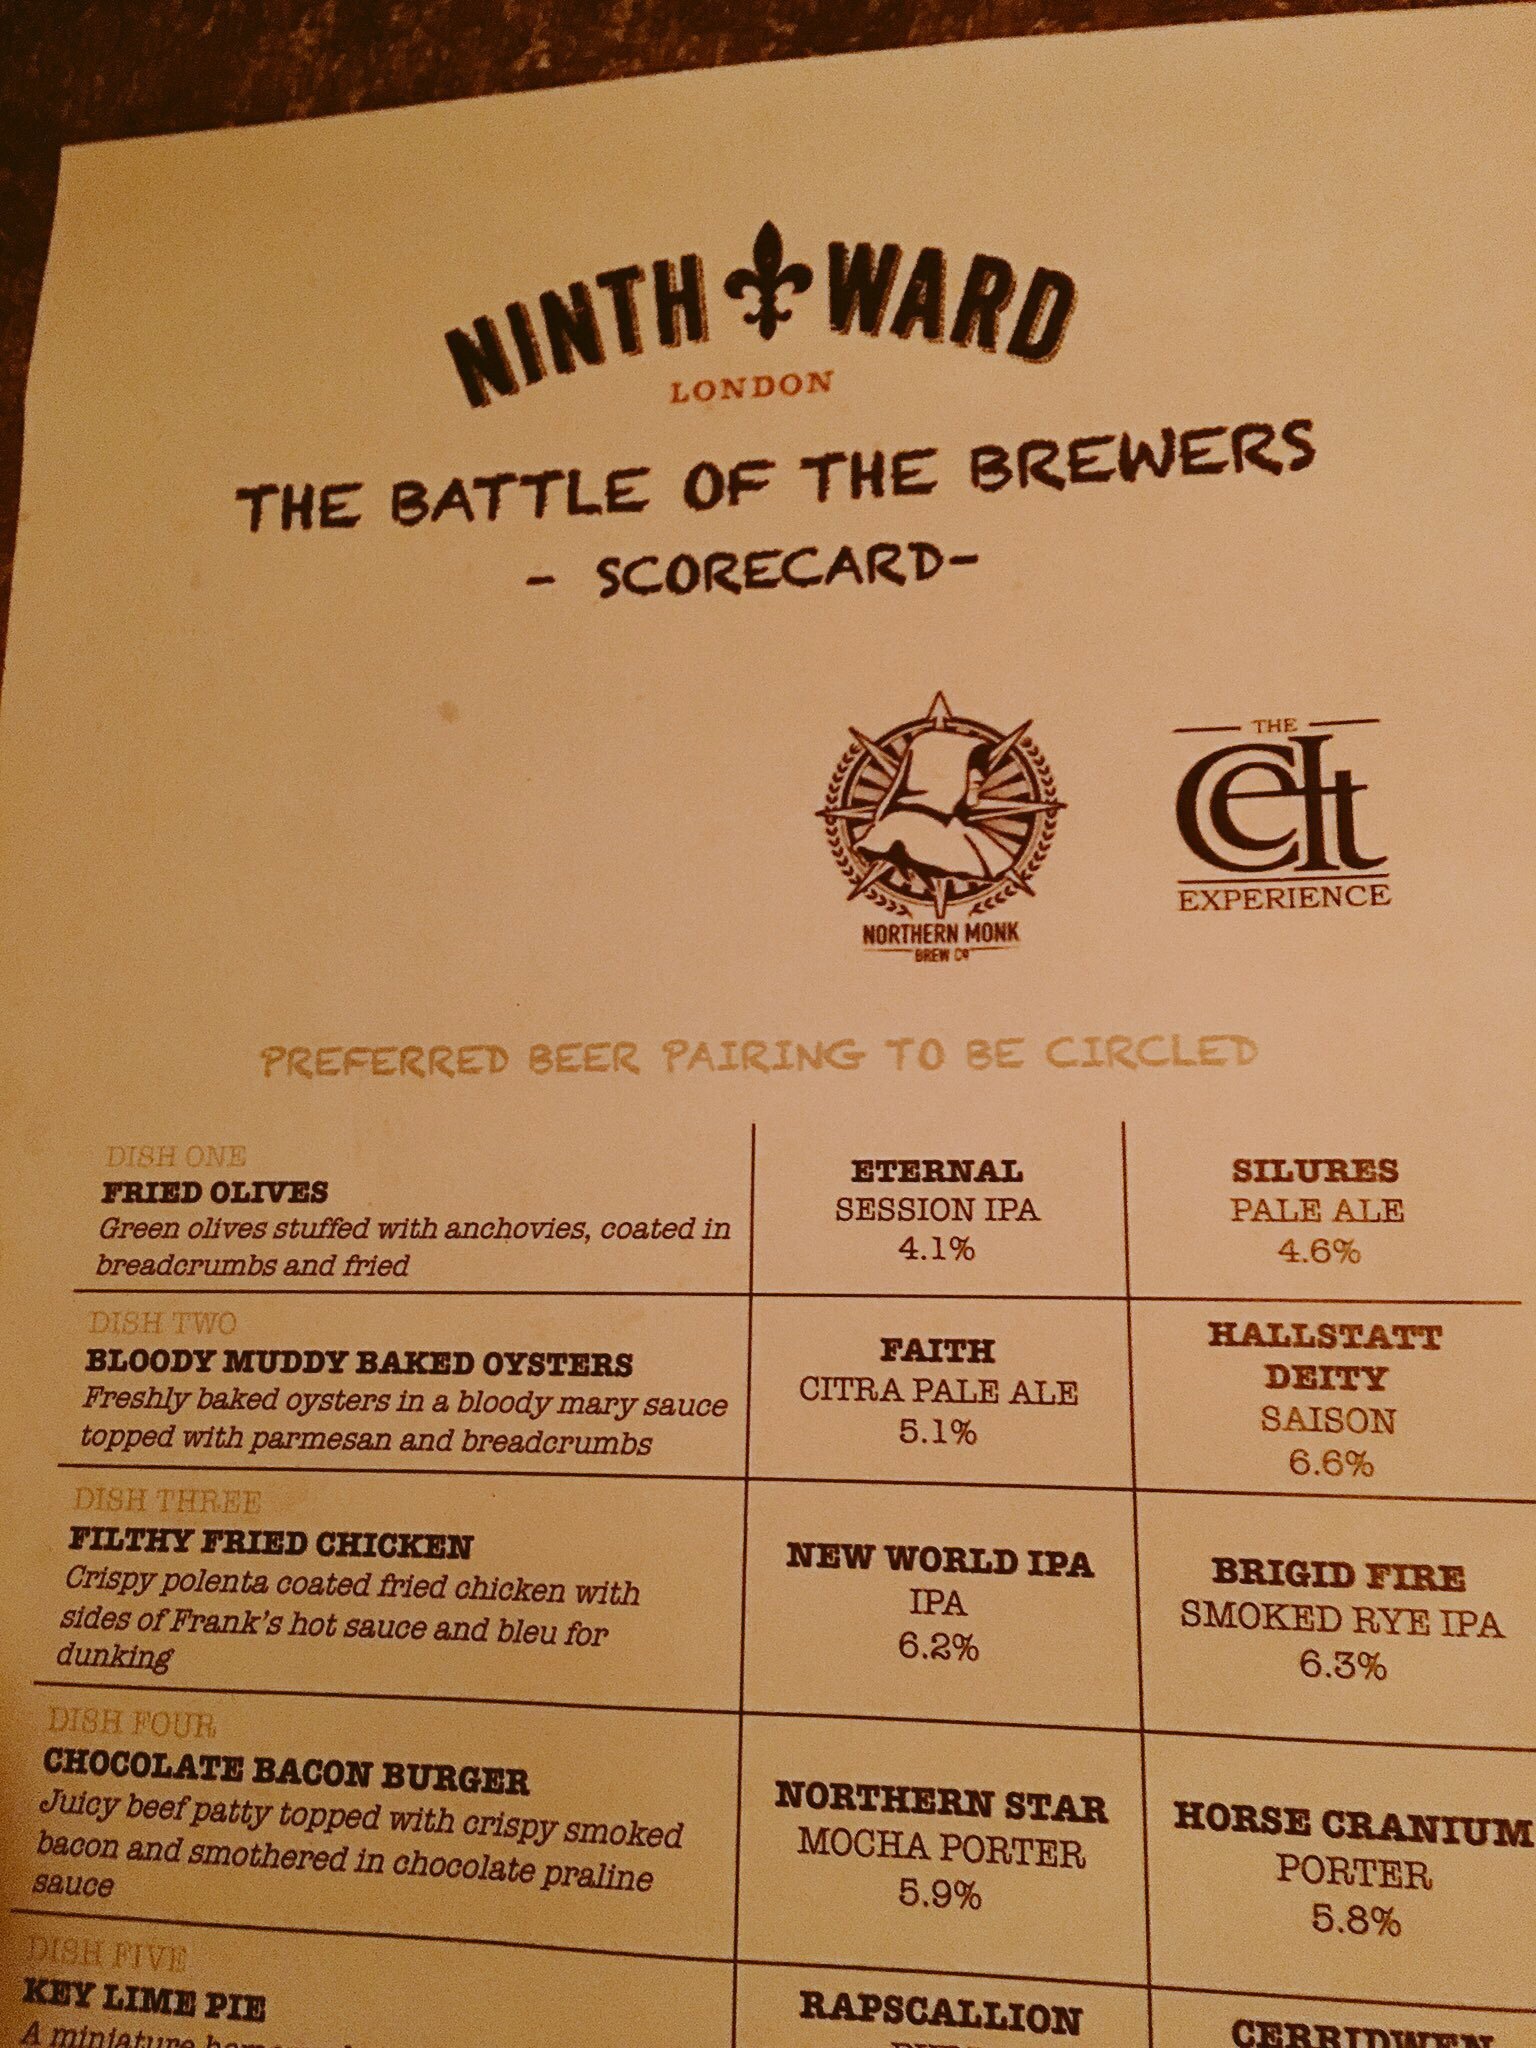 battle of the brewers  at ninth ward london celt experience northern monk